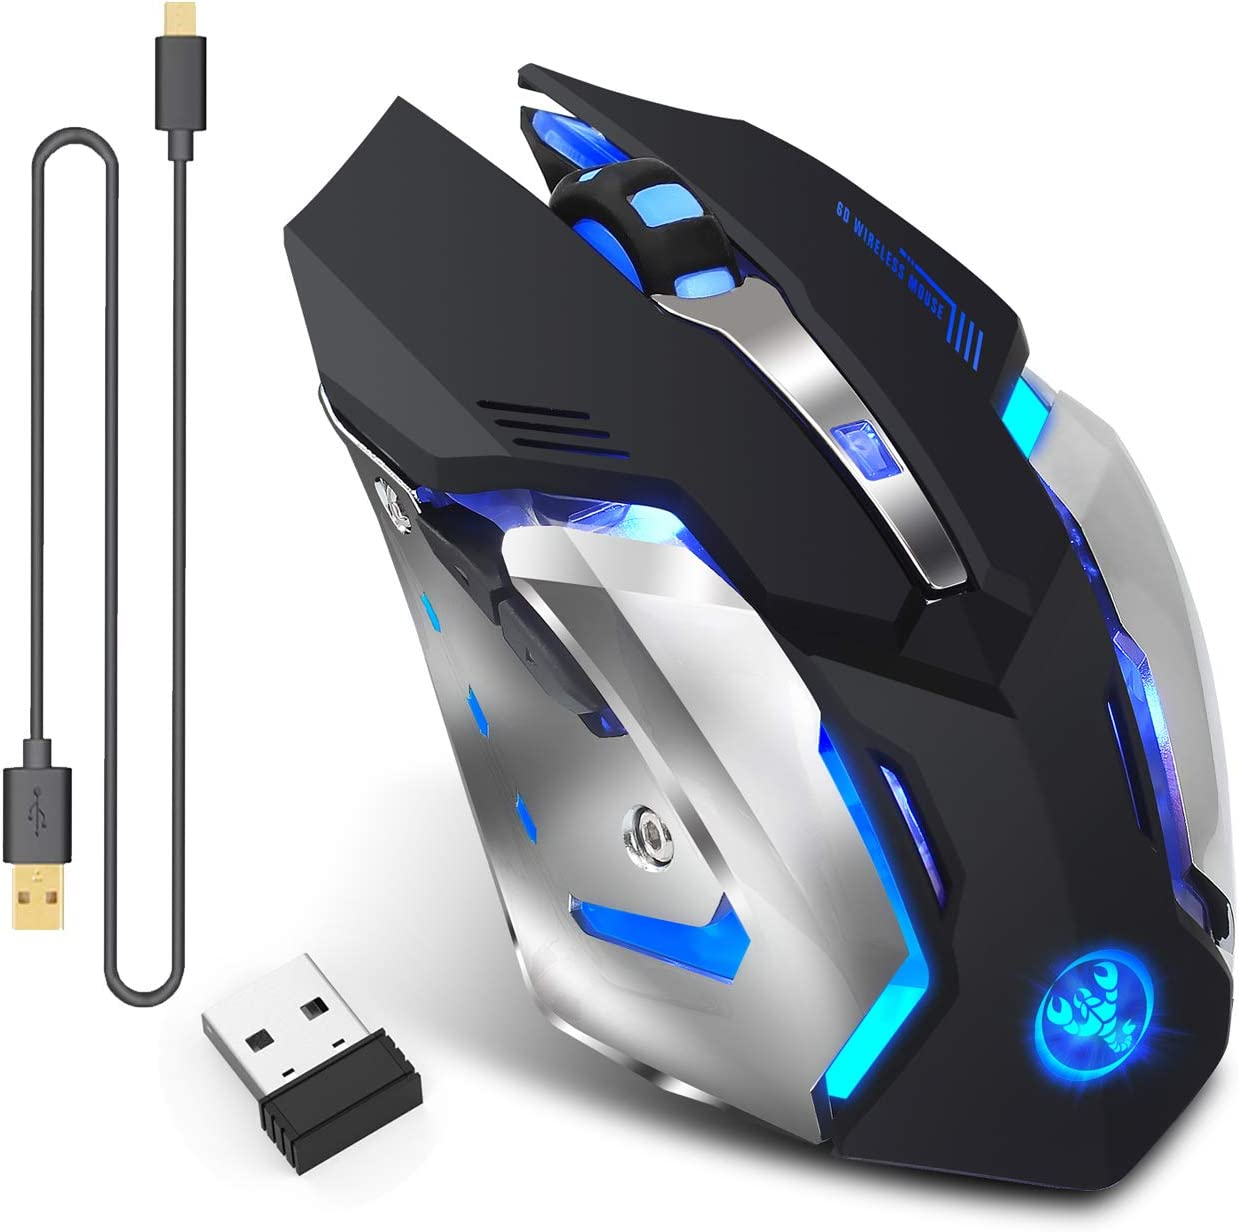 Rechargeable 2.4Ghz Wireless Gaming Mouse with USB Receiver,7 Colors Backlit for MacBook, Computer PC, Laptop (600Mah Lithium Battery) (X70 Black)